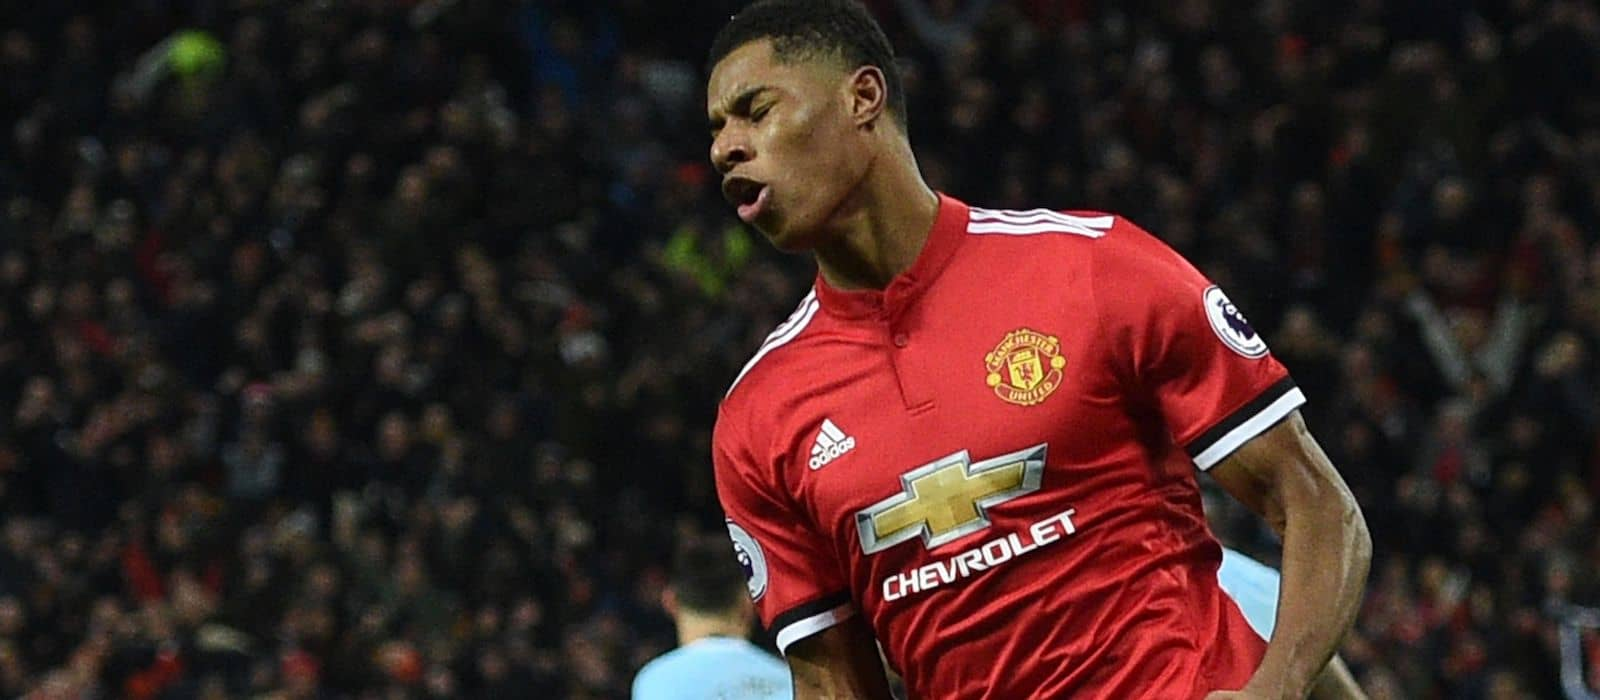 Marcus Rashford left 'bemused' by Mourinho's criticism of him after Manchester United's win vs Newcastle